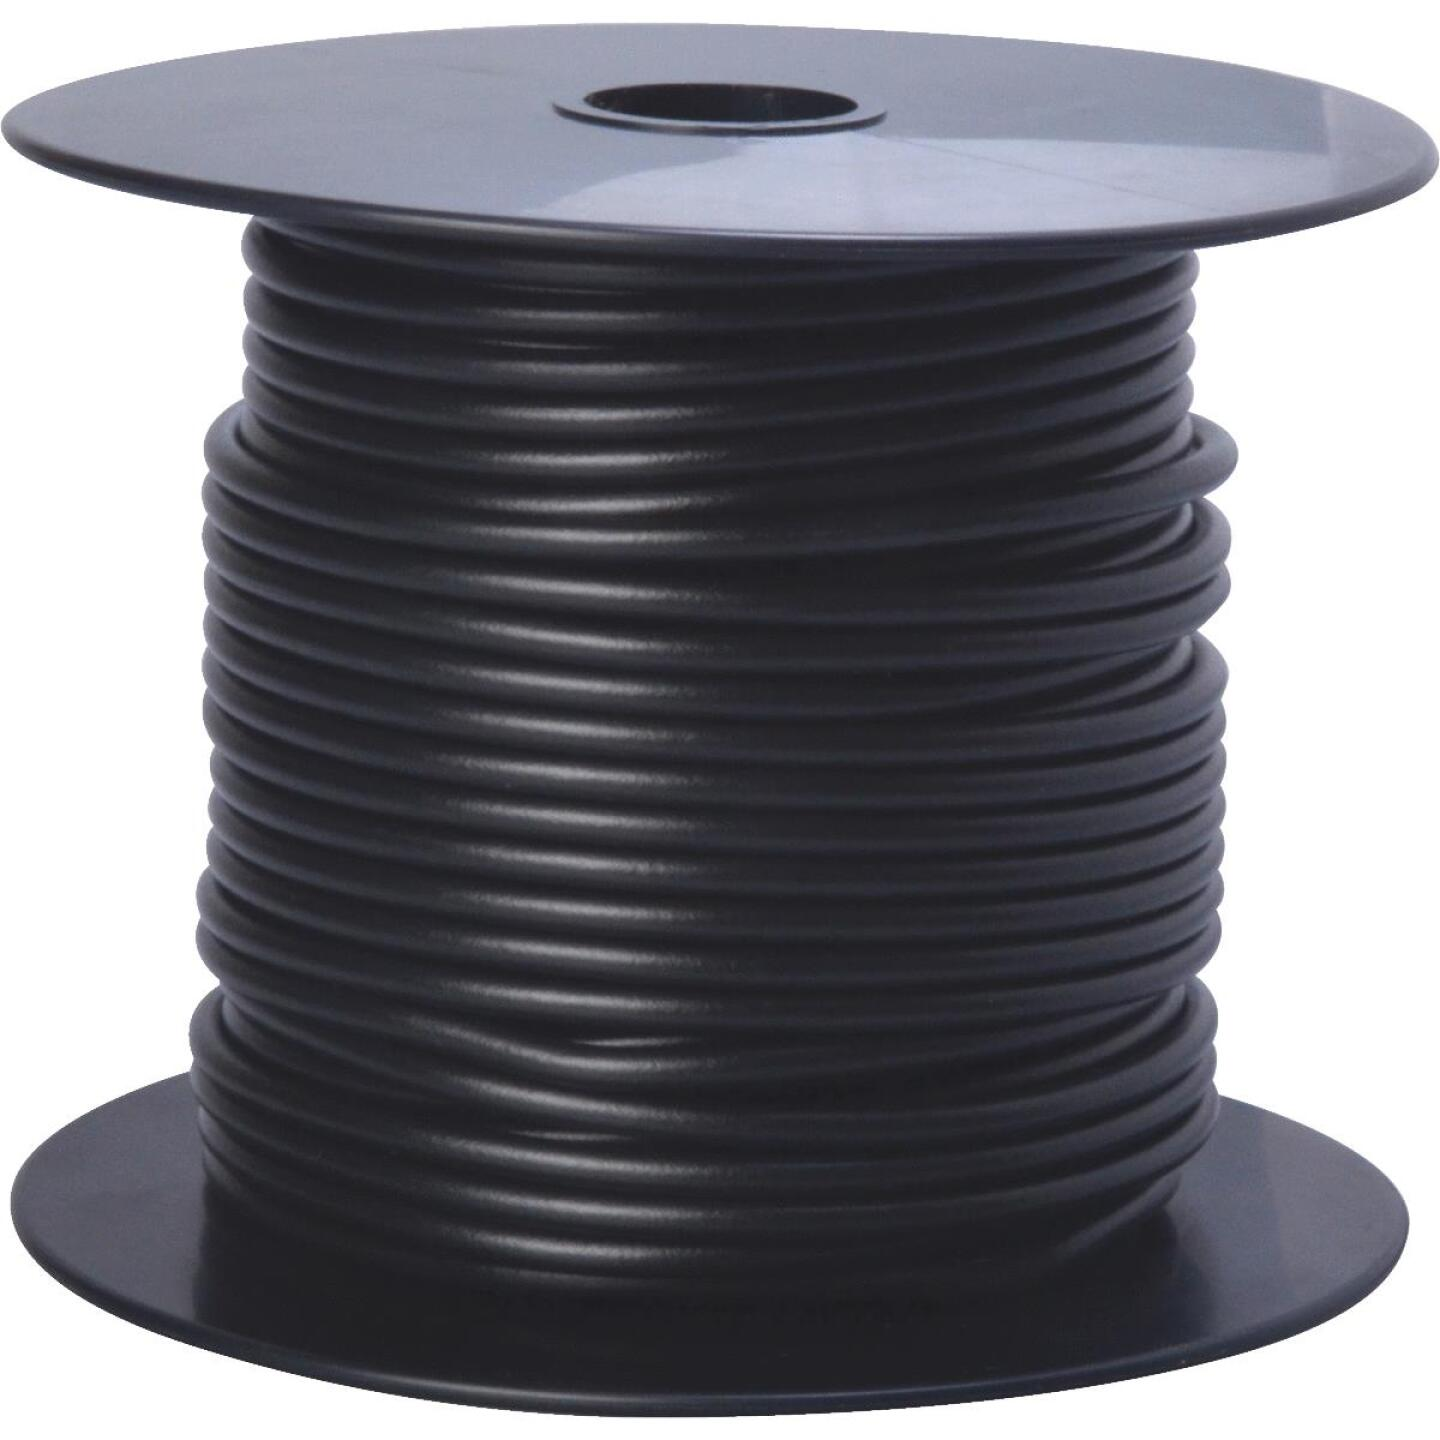 ROAD POWER 100 Ft. 14 Ga. PVC-Coated Primary Wire, Black Image 1